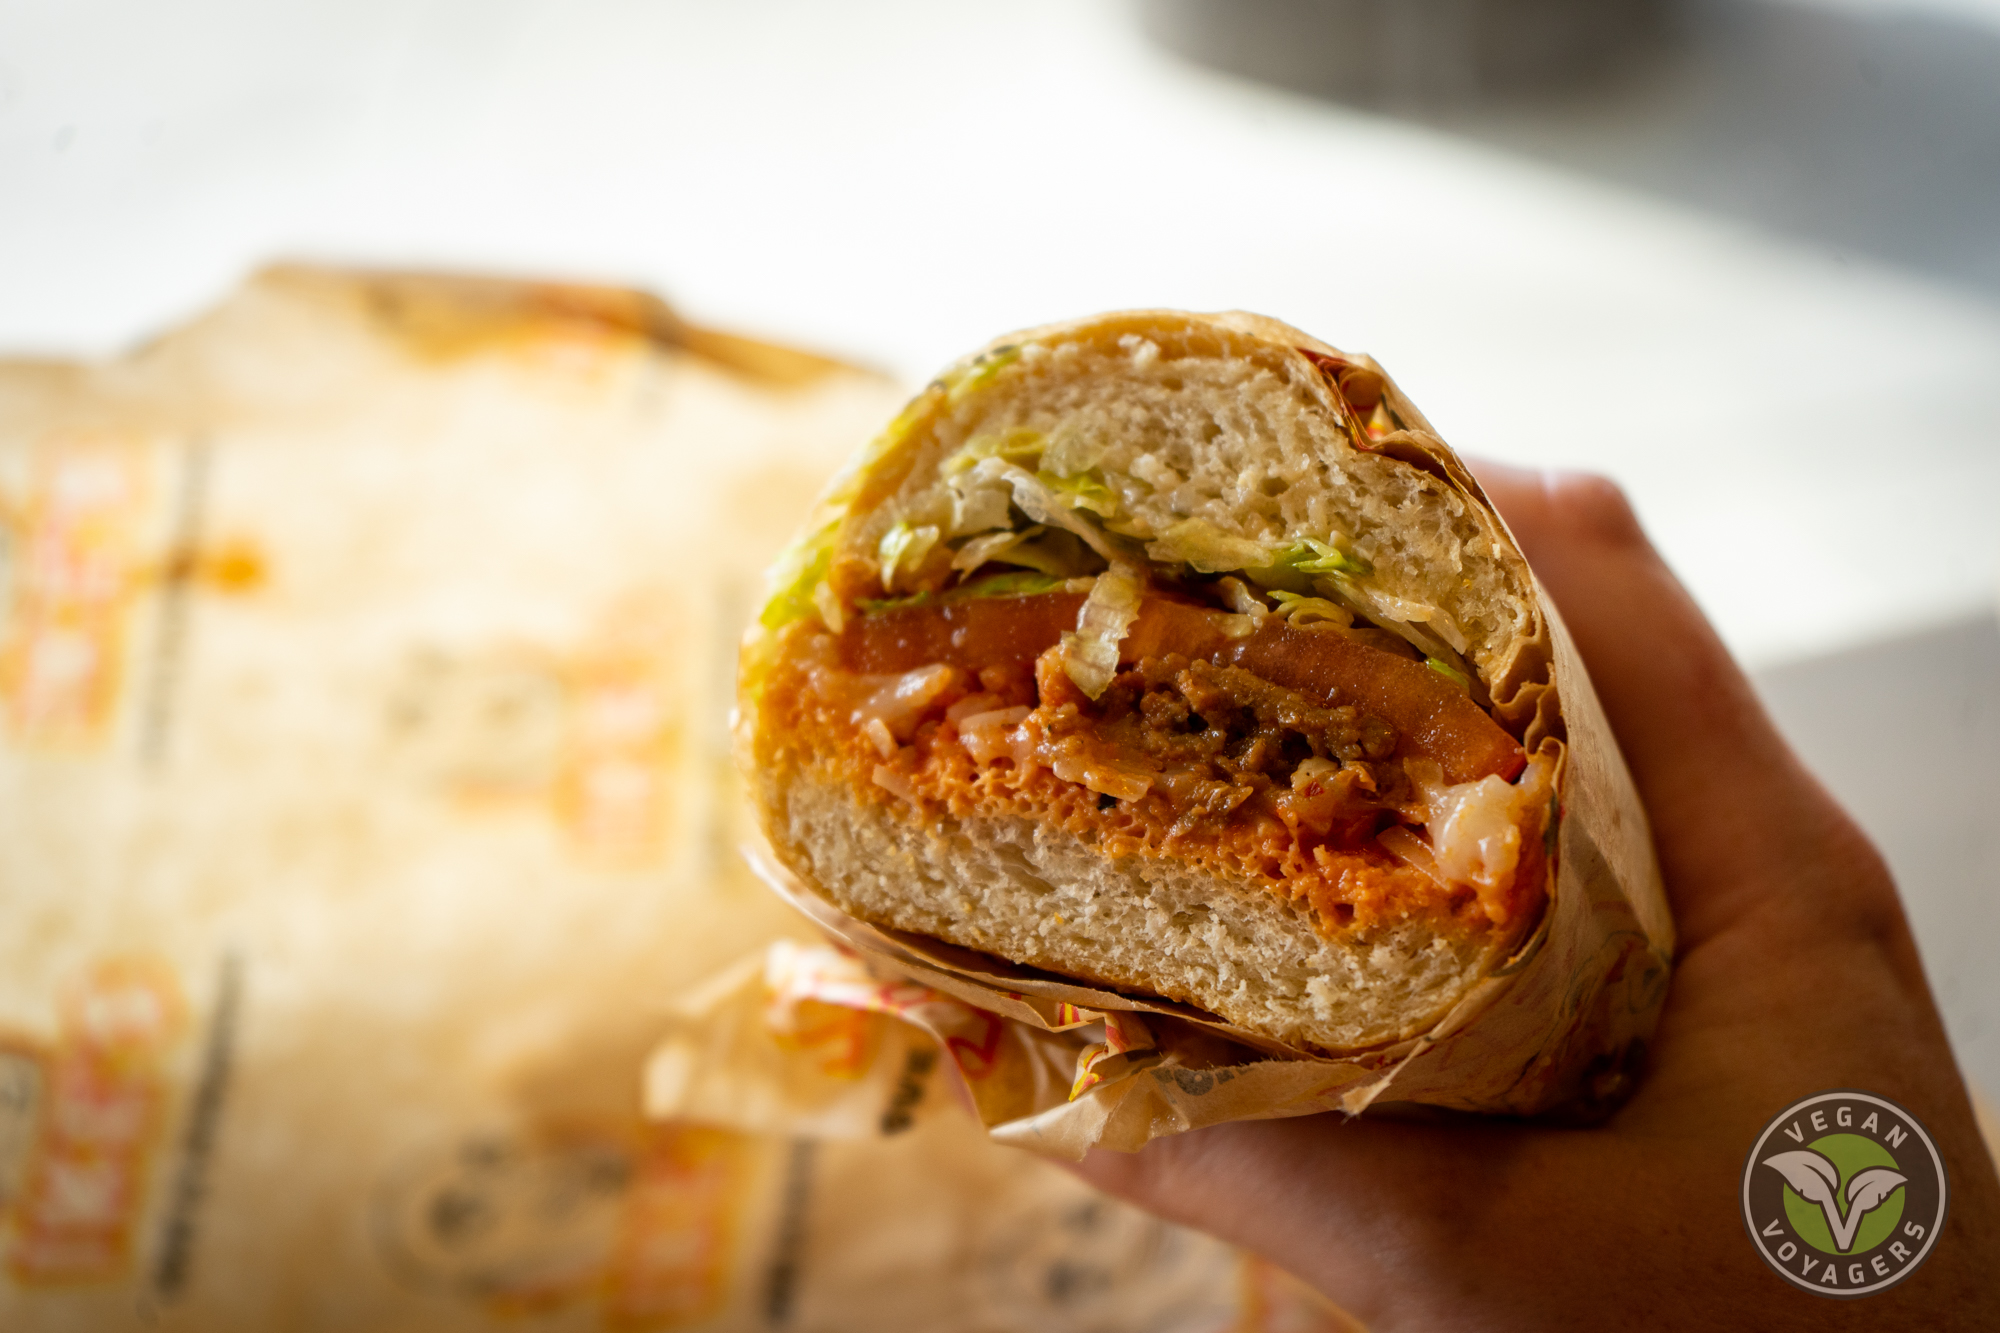 Ike's Sandwiches | The Vegan Guide to the Bay Area, California